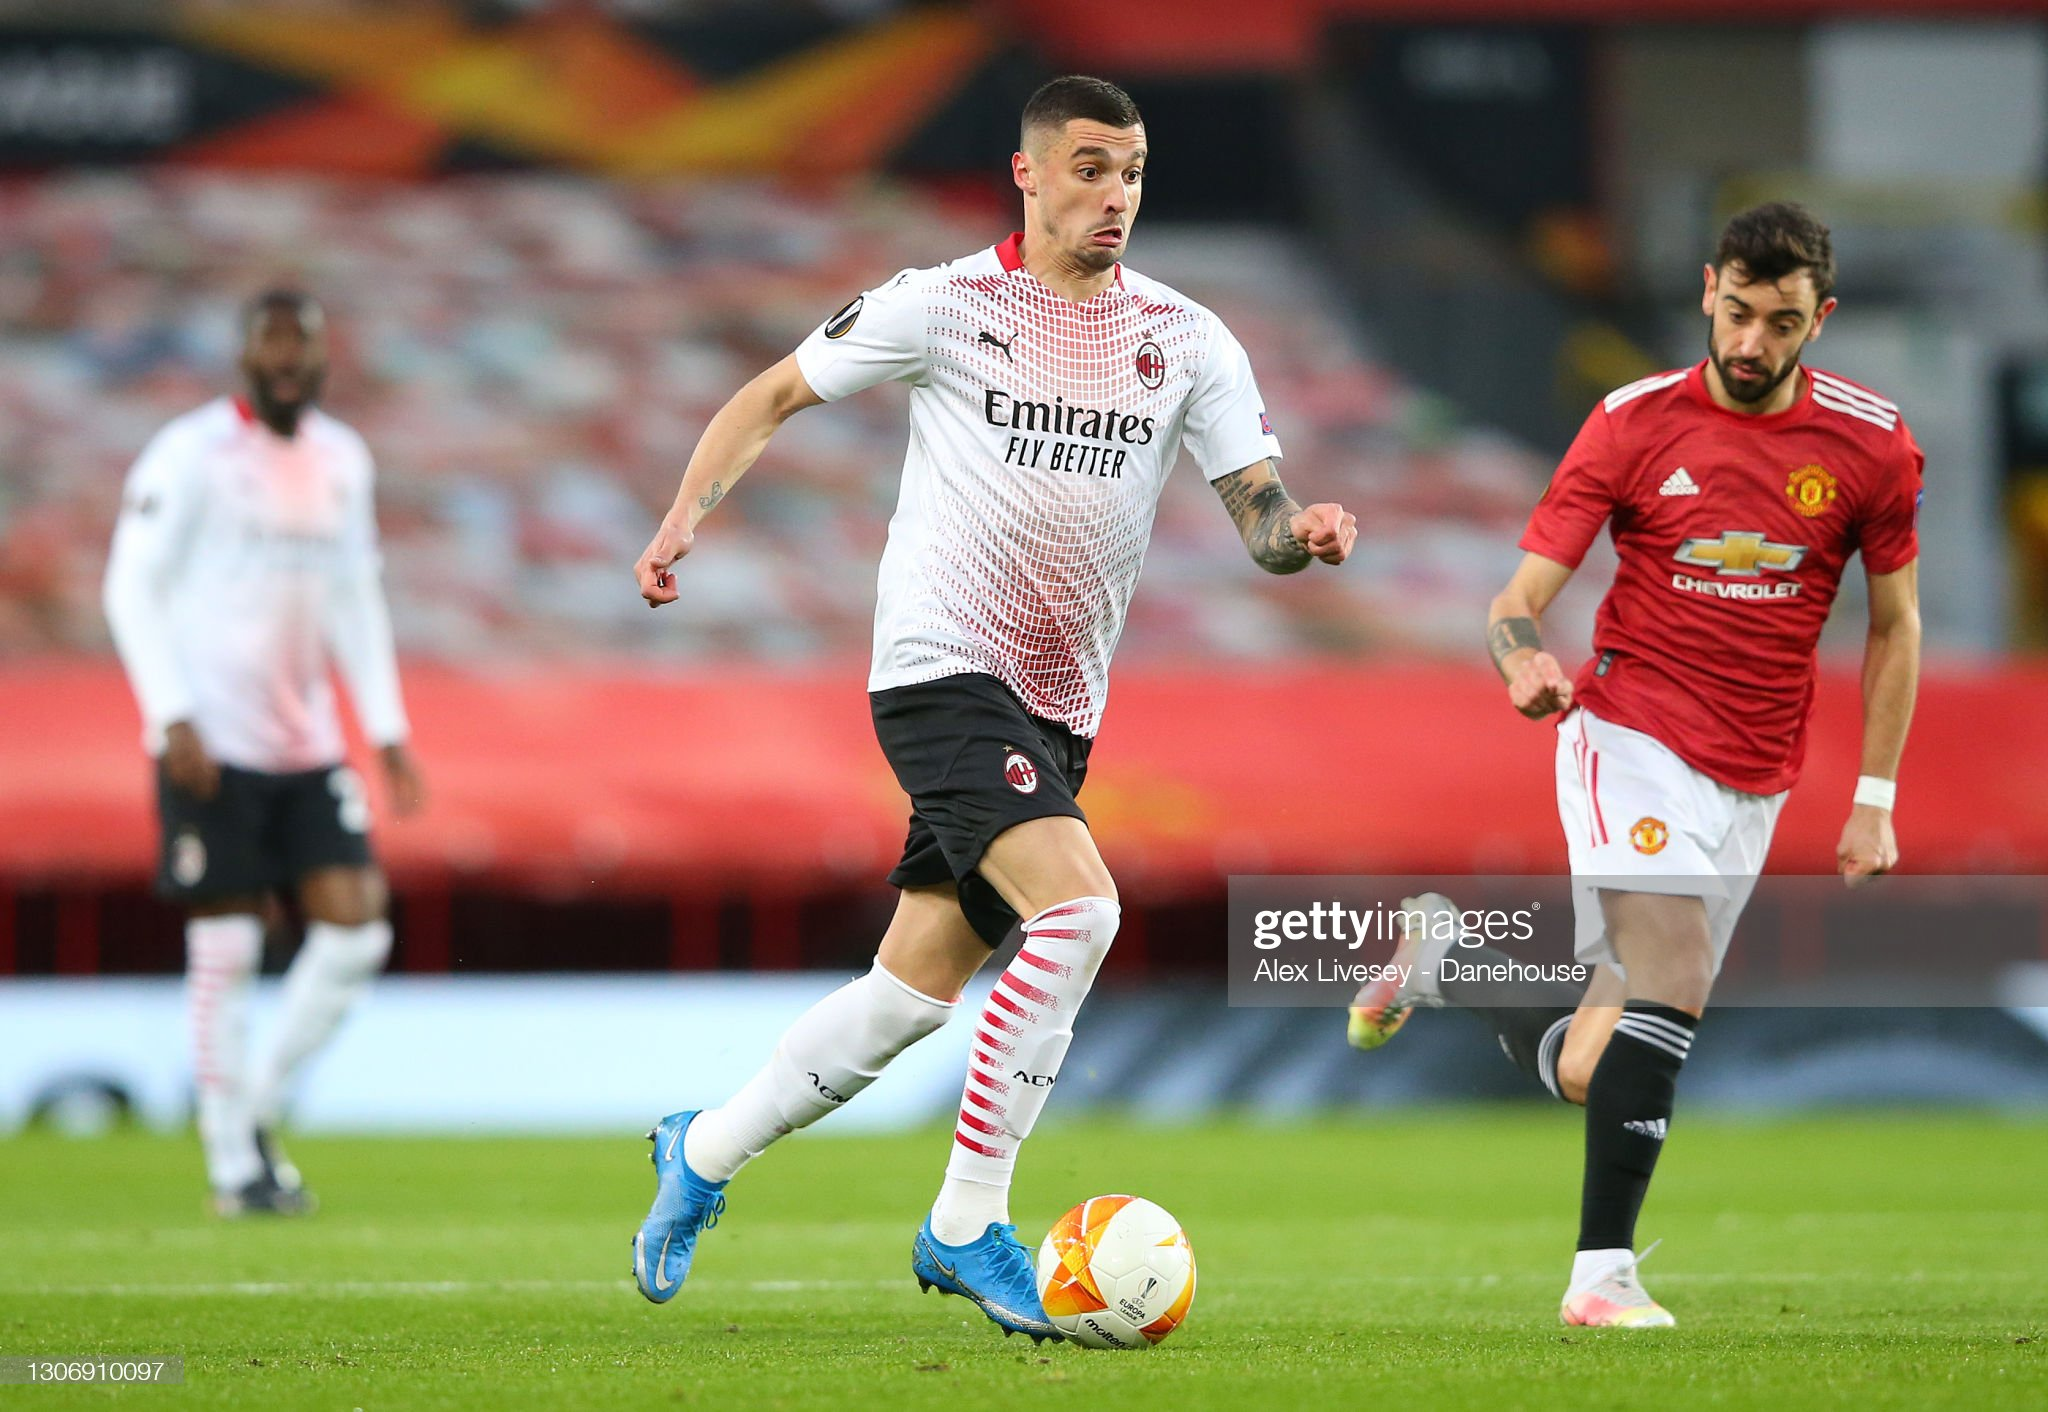 Milan vs Manchester United Preview, prediction and odds